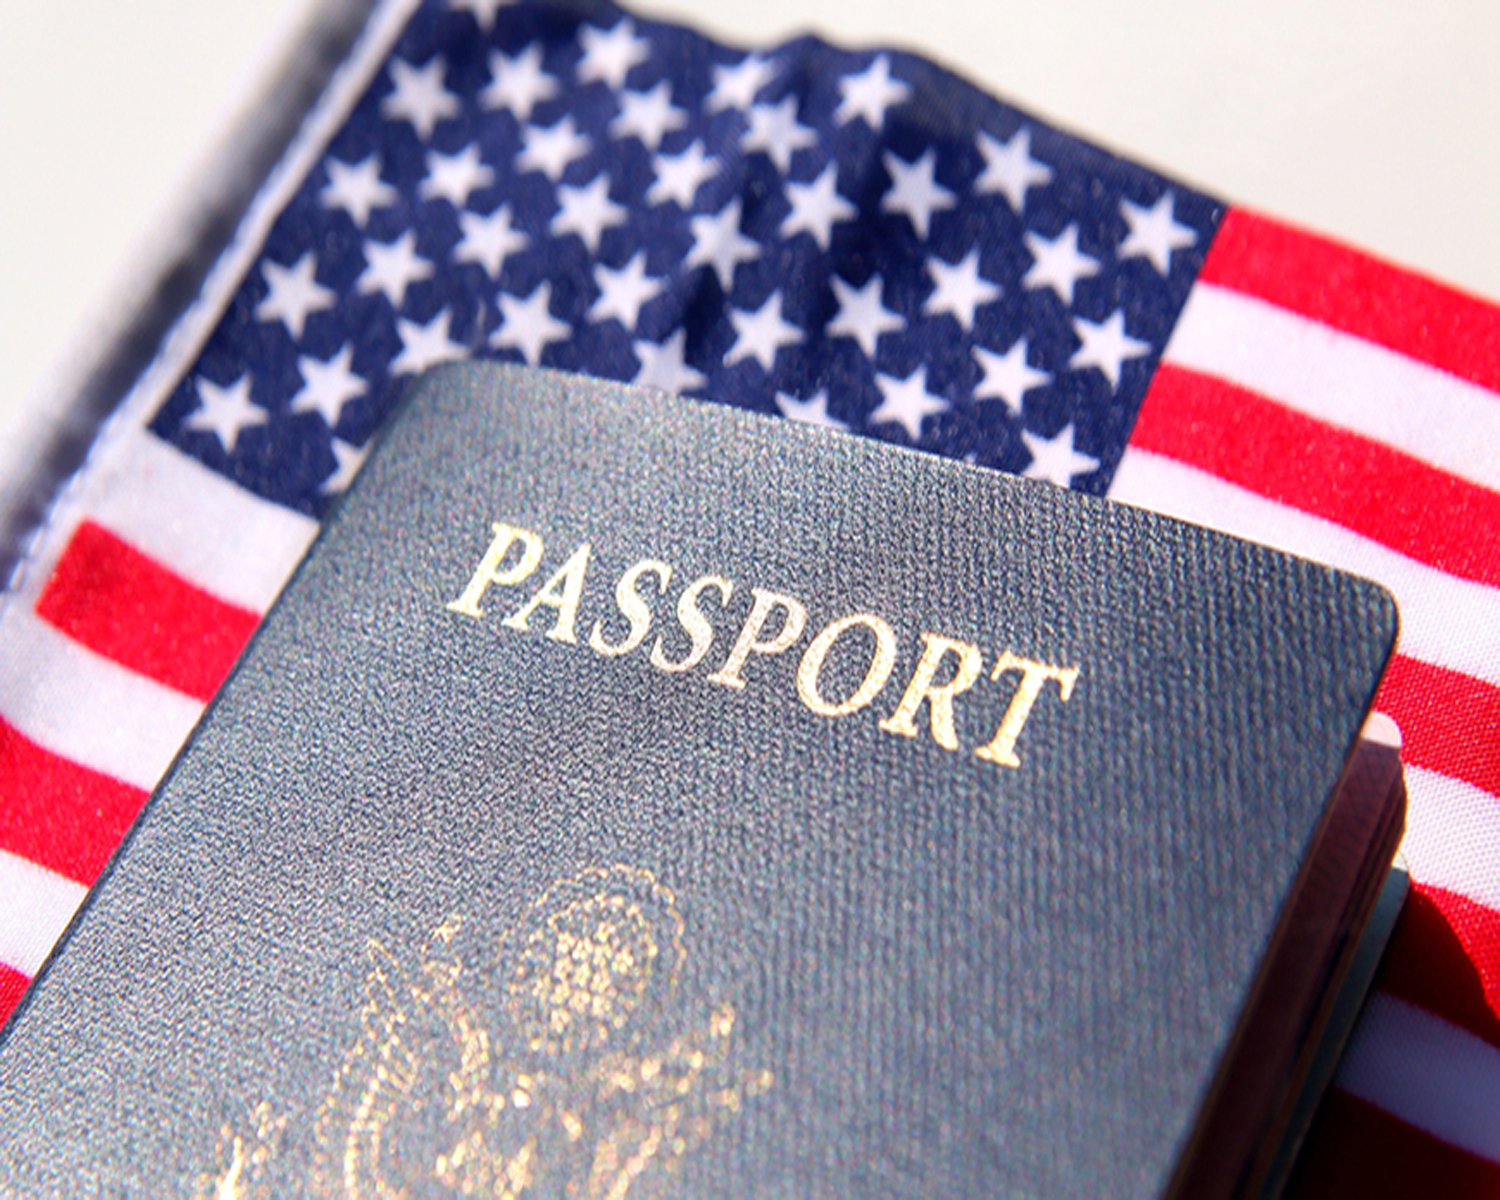 extend my stay on Tourist Visa